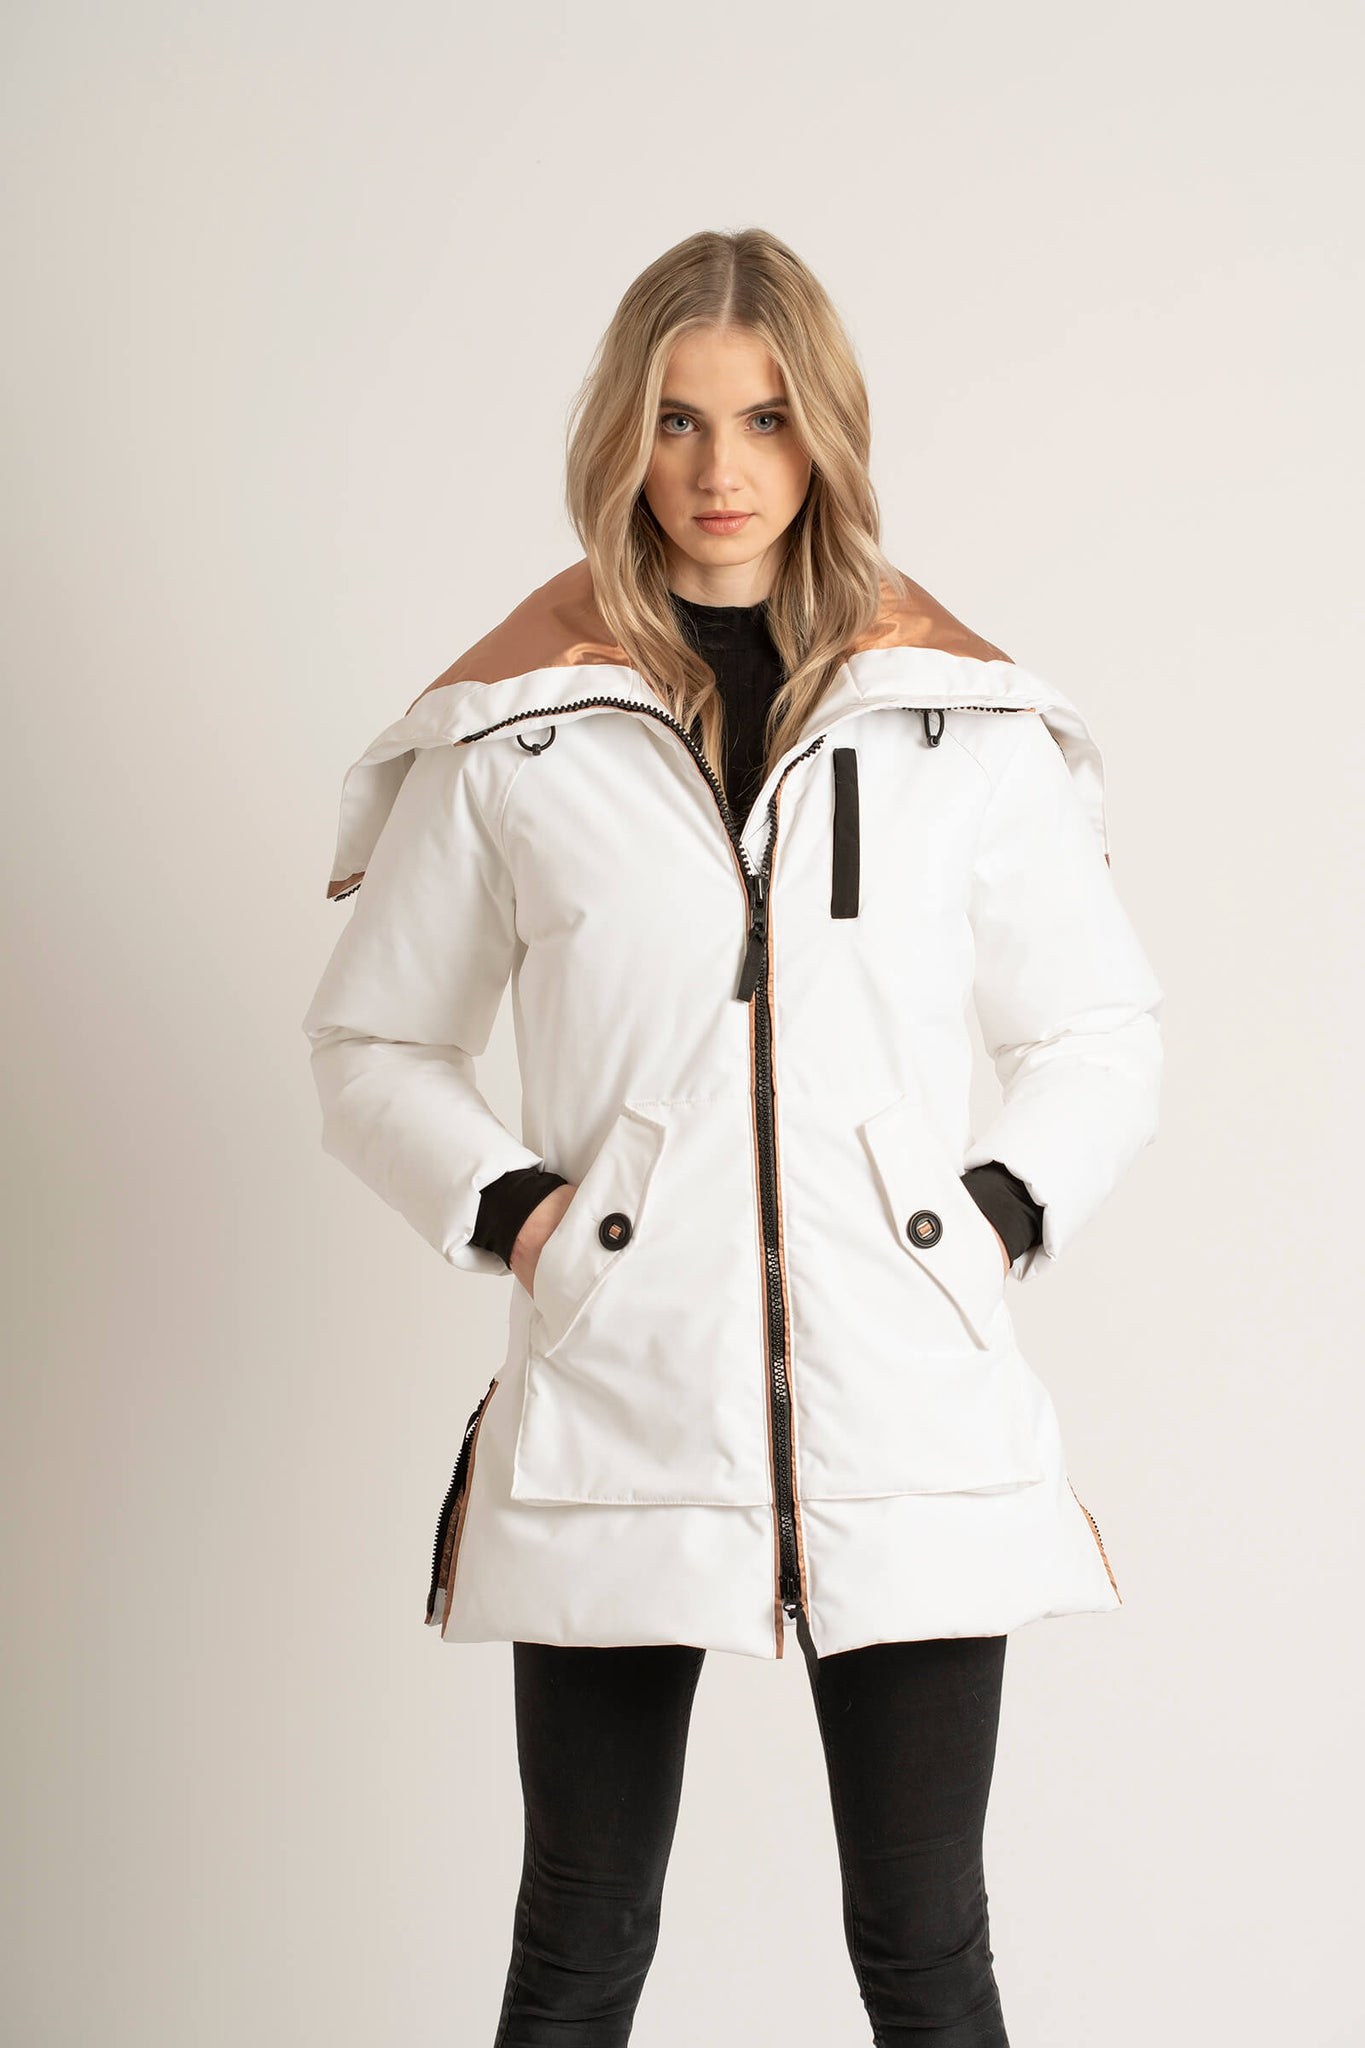 Women wearing a Tough Duck Black Widgeon Mid-Length Parka in white with her hands in her pocket.